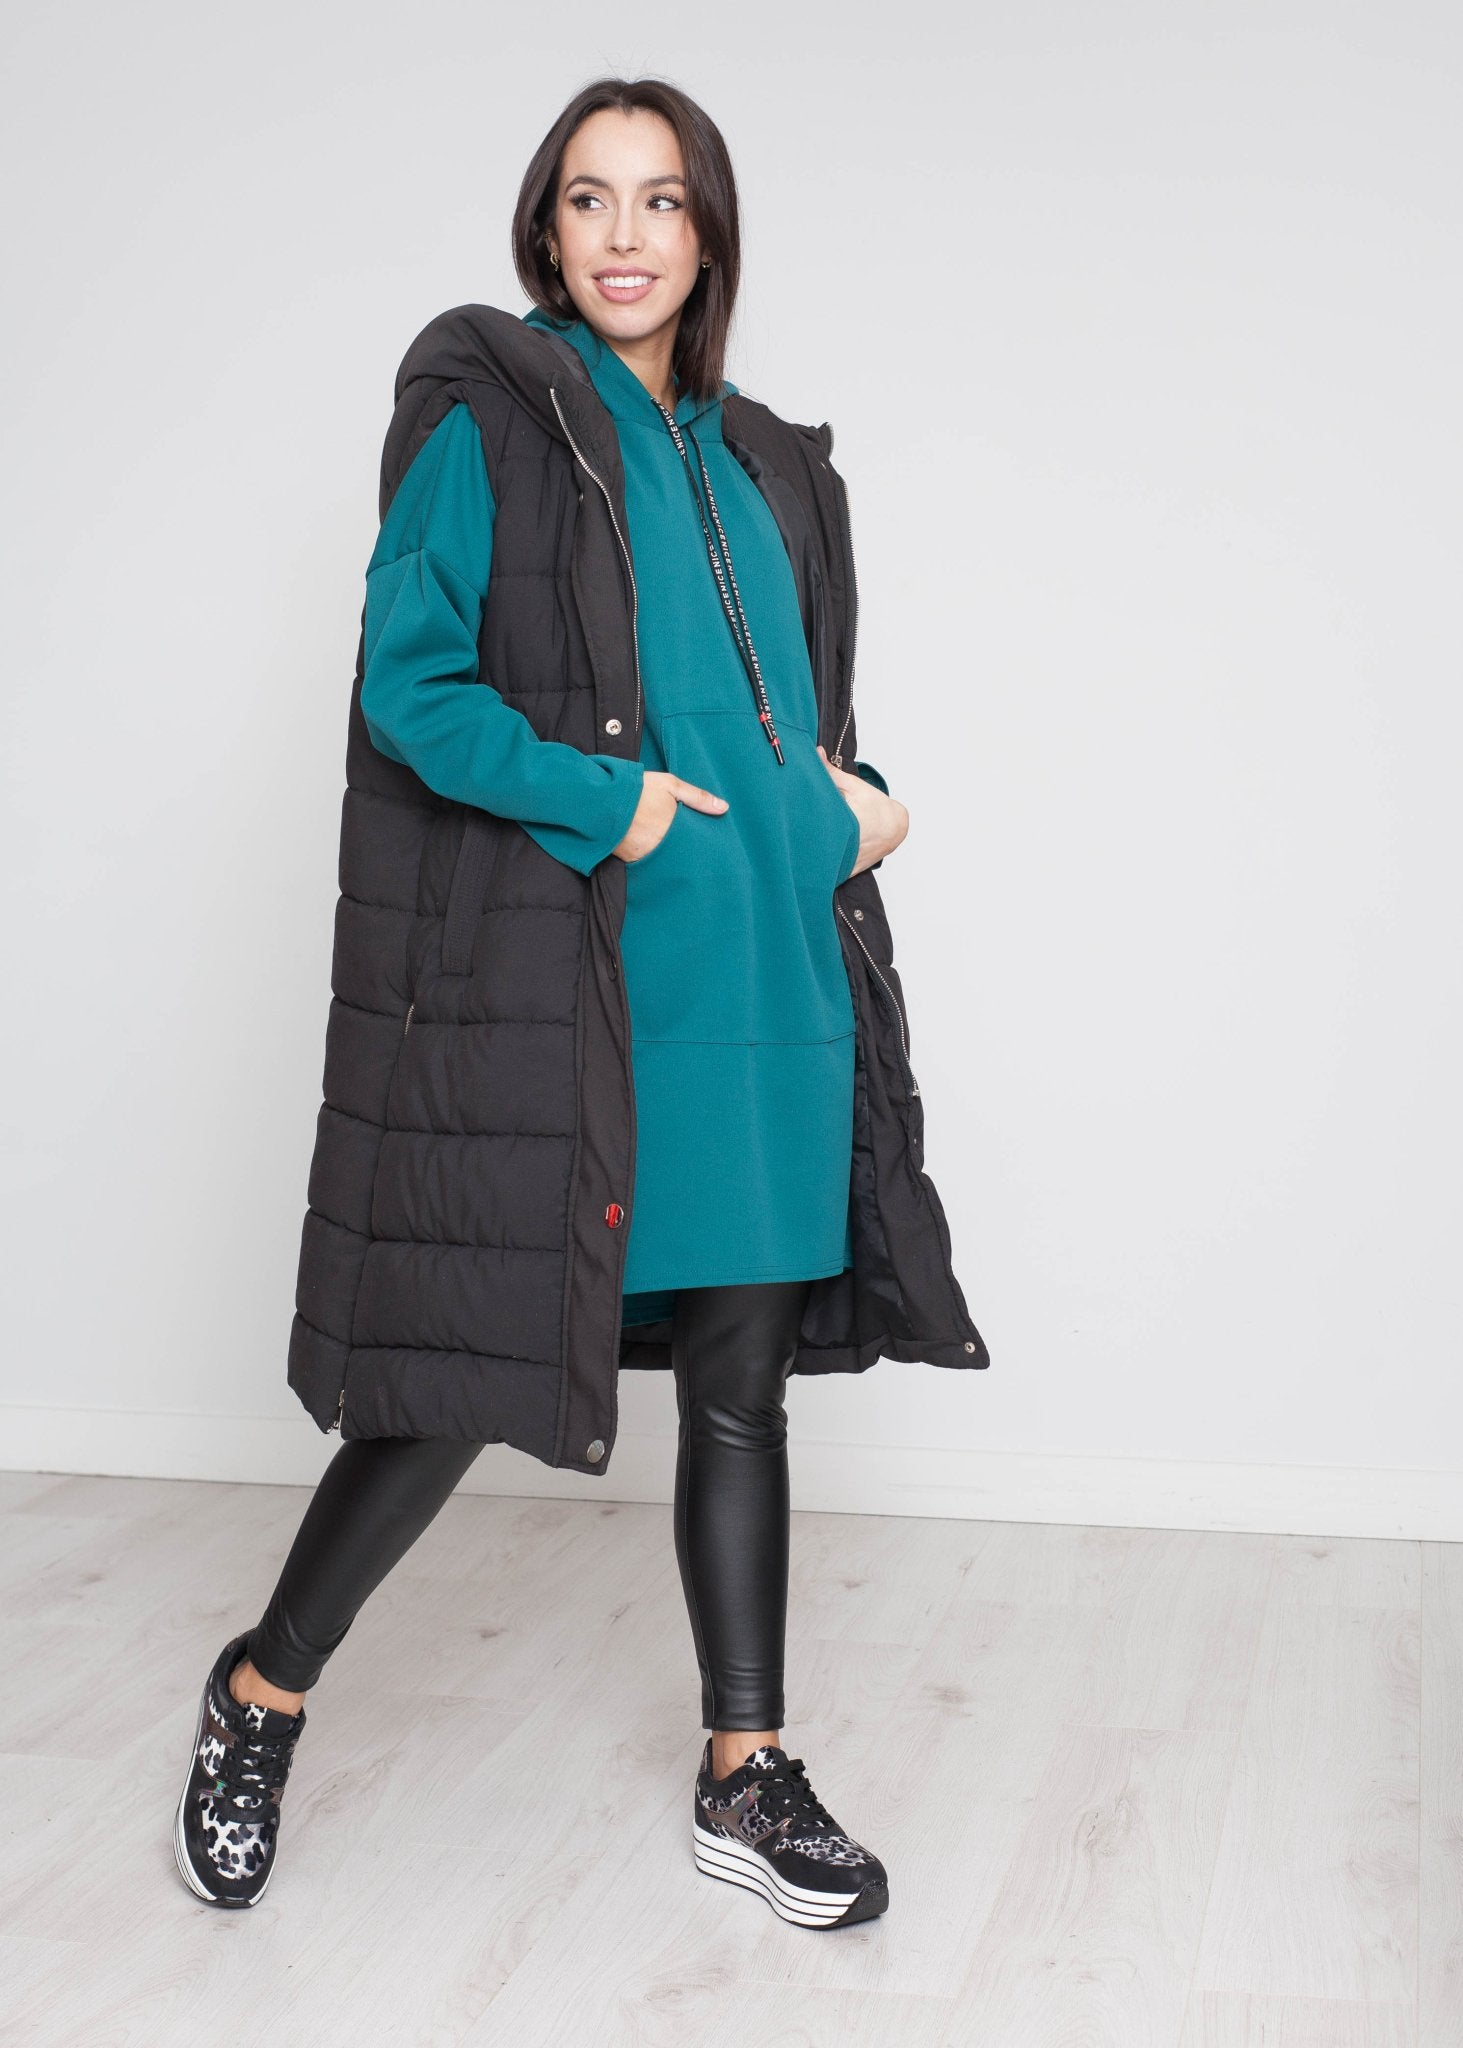 Priya Longline Hoodie In Teal - The Walk in Wardrobe